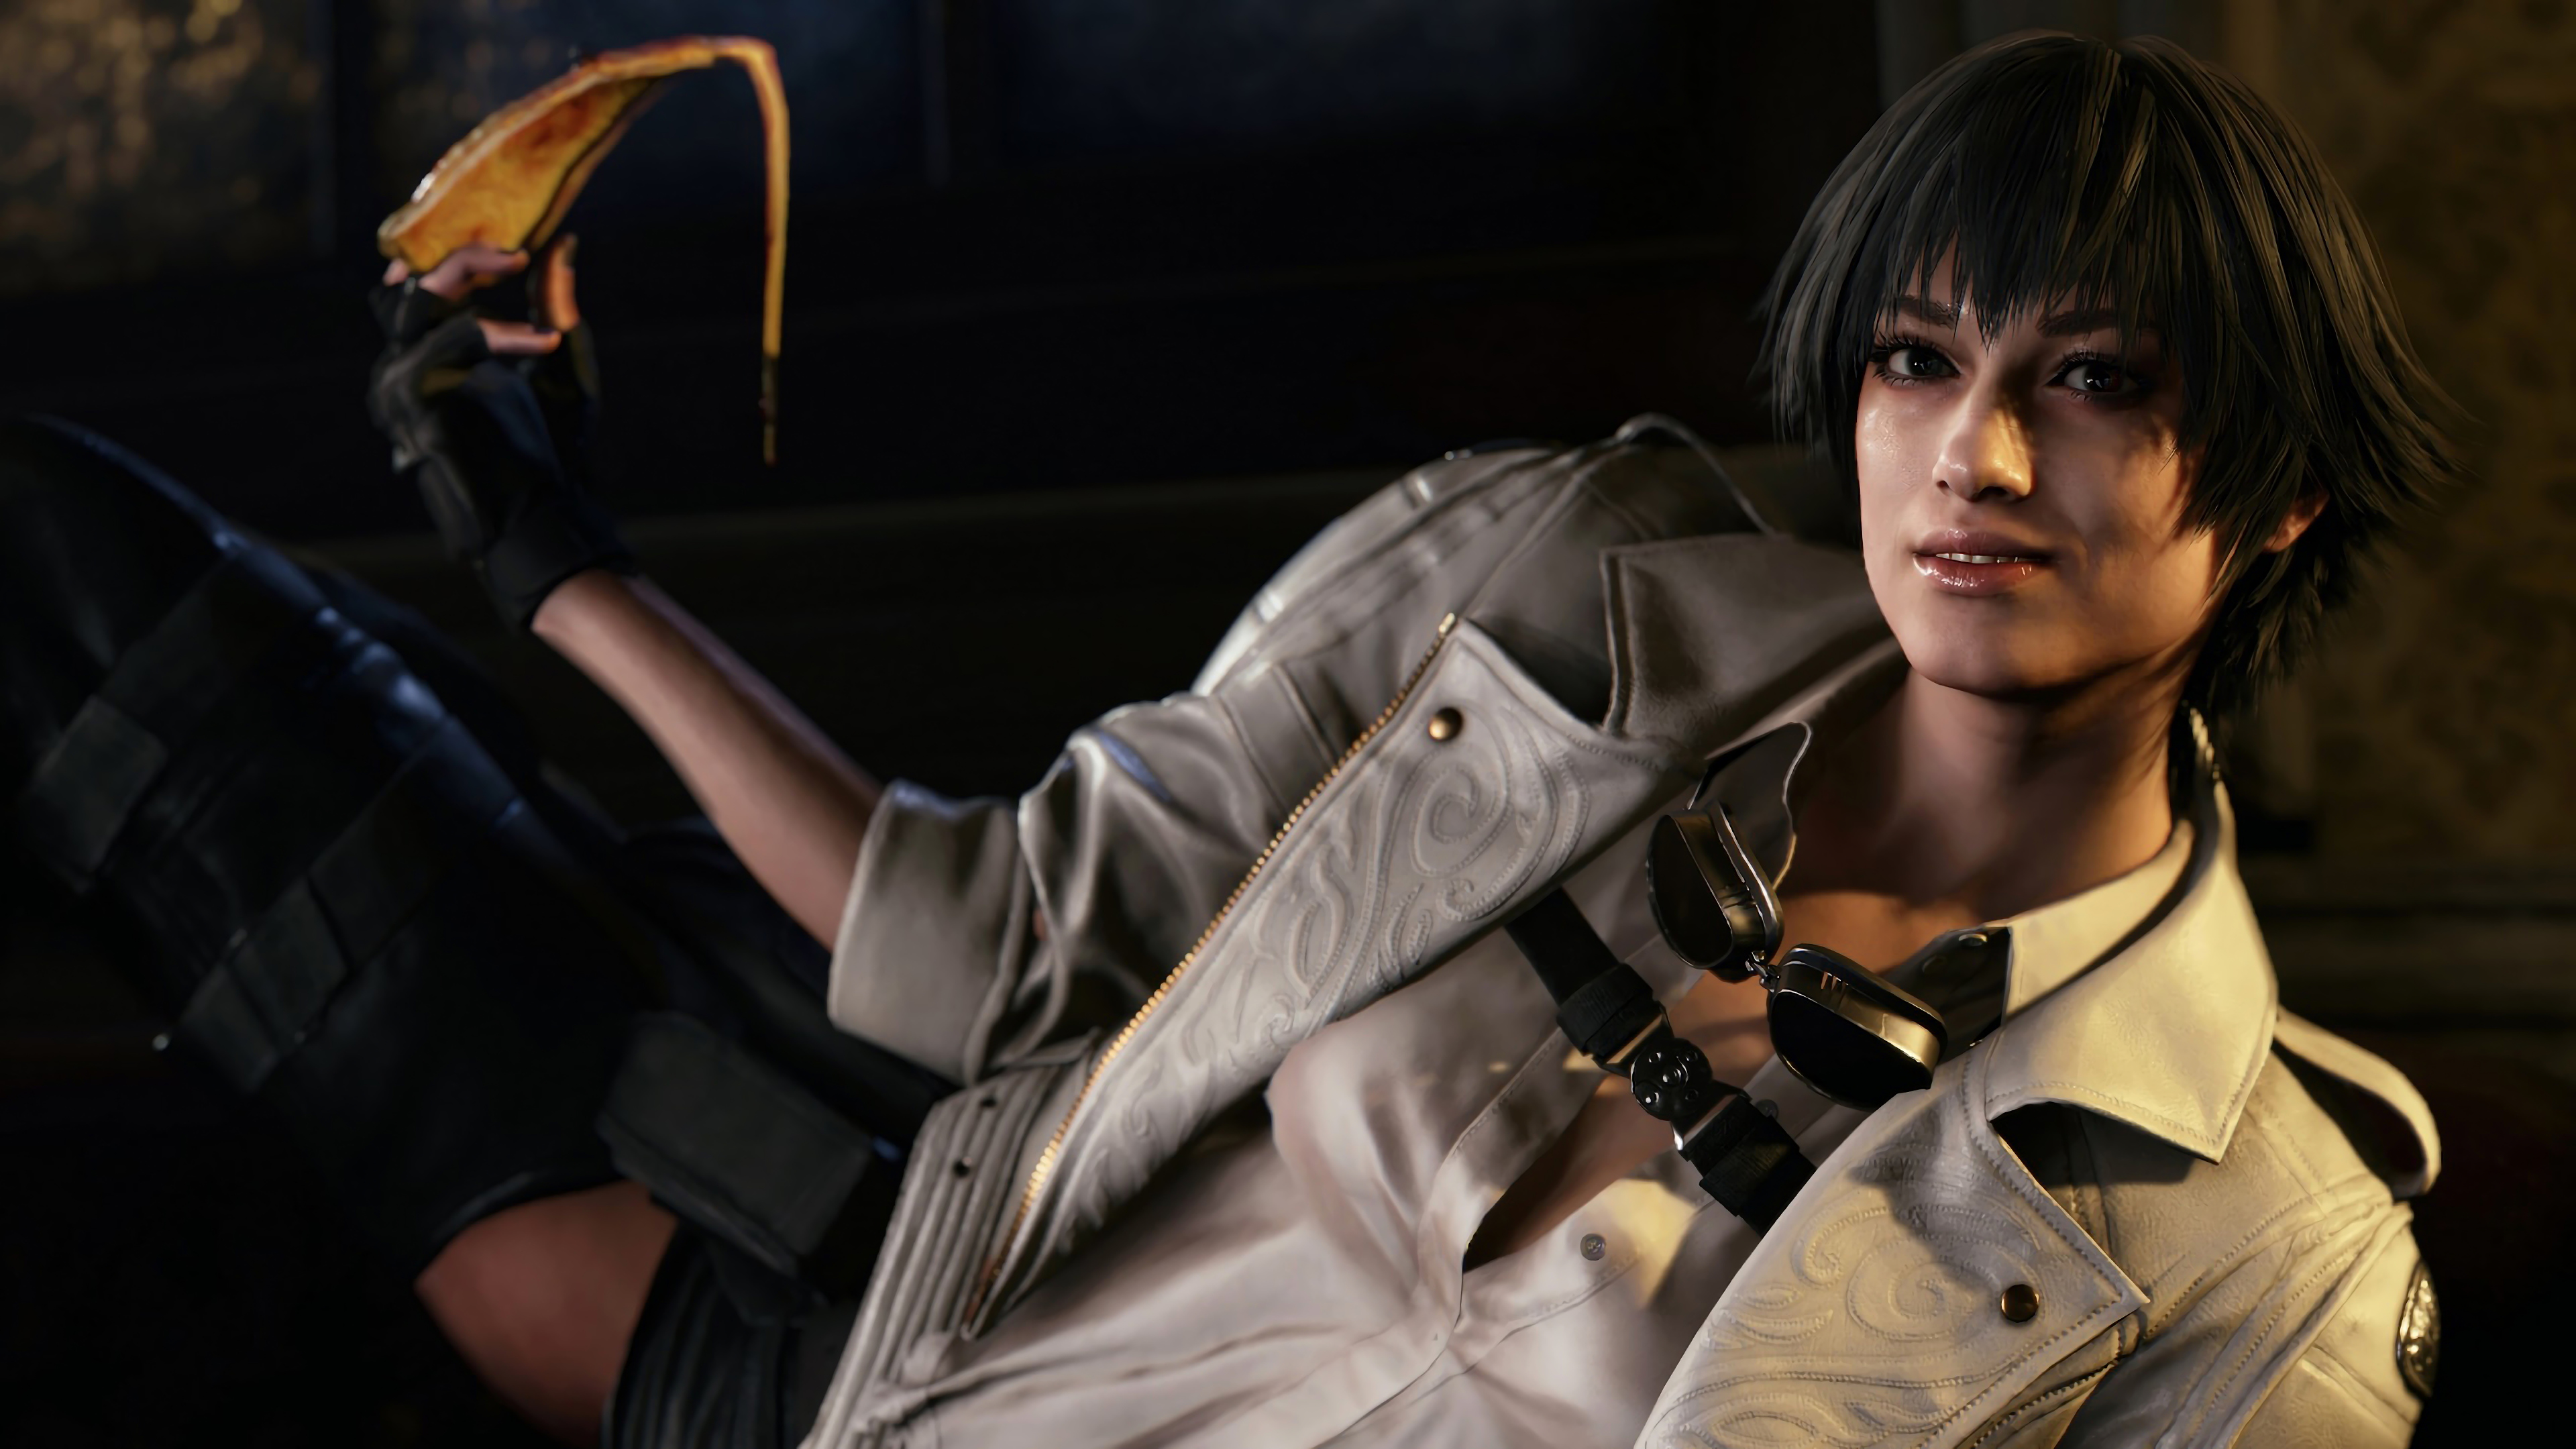 Lady Devil May Cry 5 4k Wallpaper 132